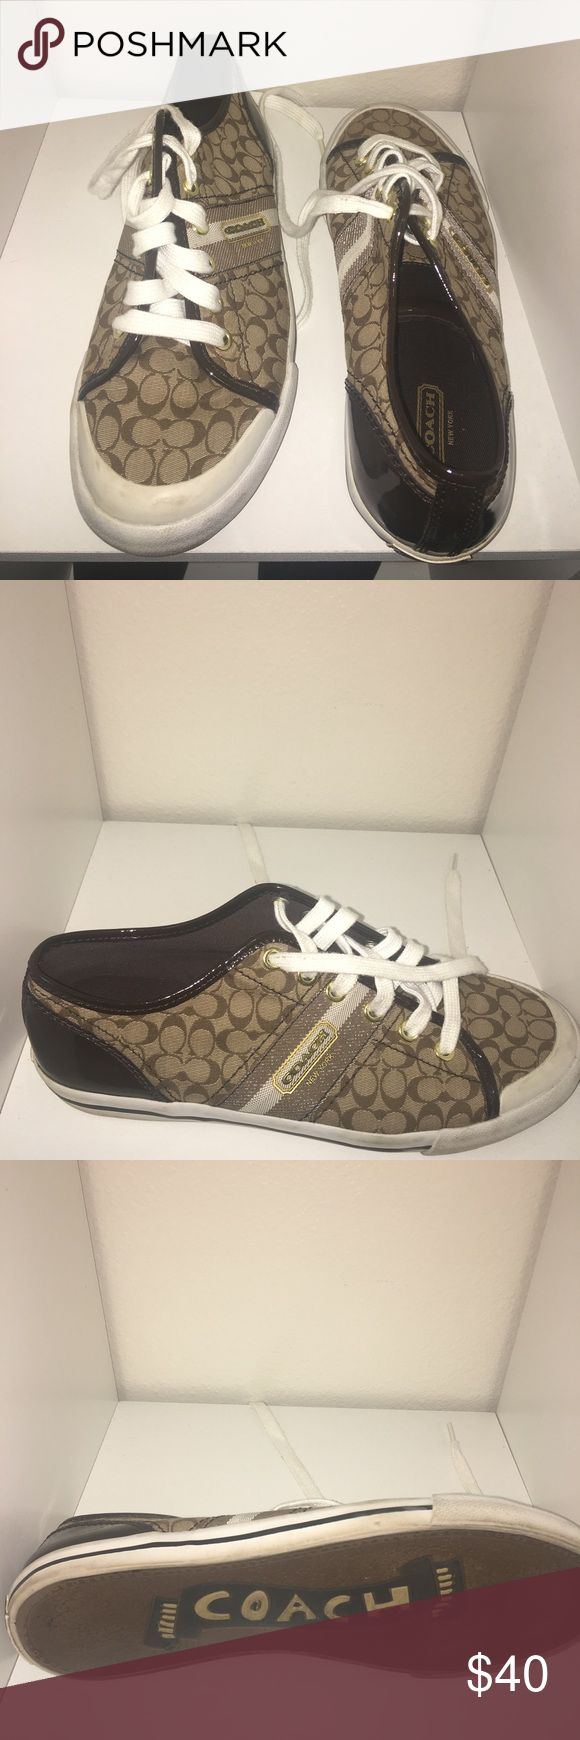 Coach Tennis Shoes Coach Tennis Shoes, some scuffs on white trim. Great condition otherwise. Coach Shoes Athletic Shoes